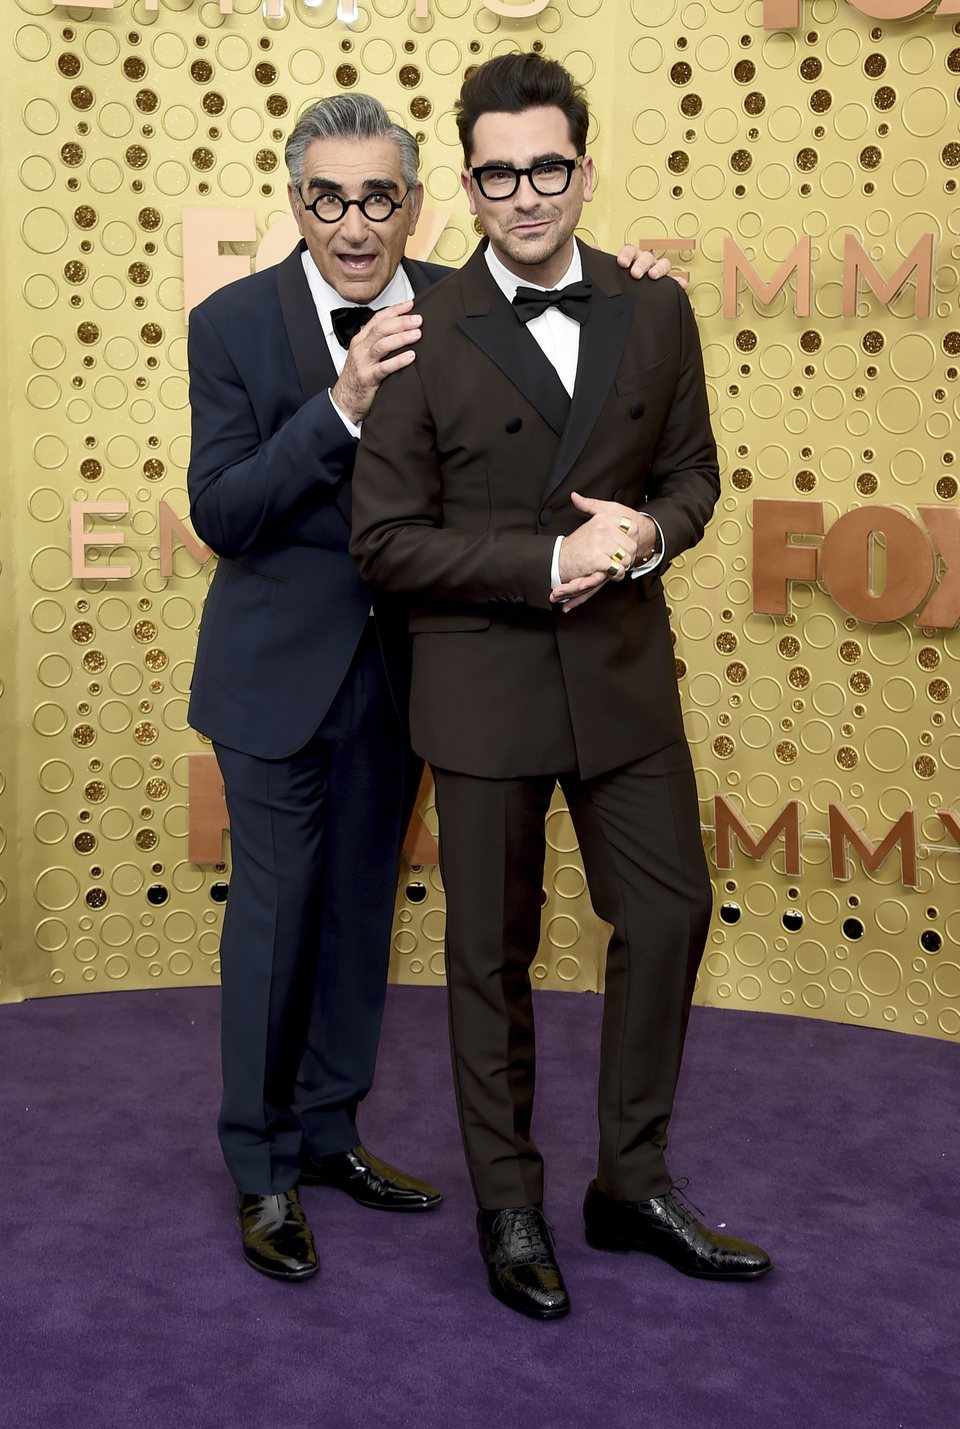 Eugene Levy and Dan Levy at the Emmy 2019 red carpet